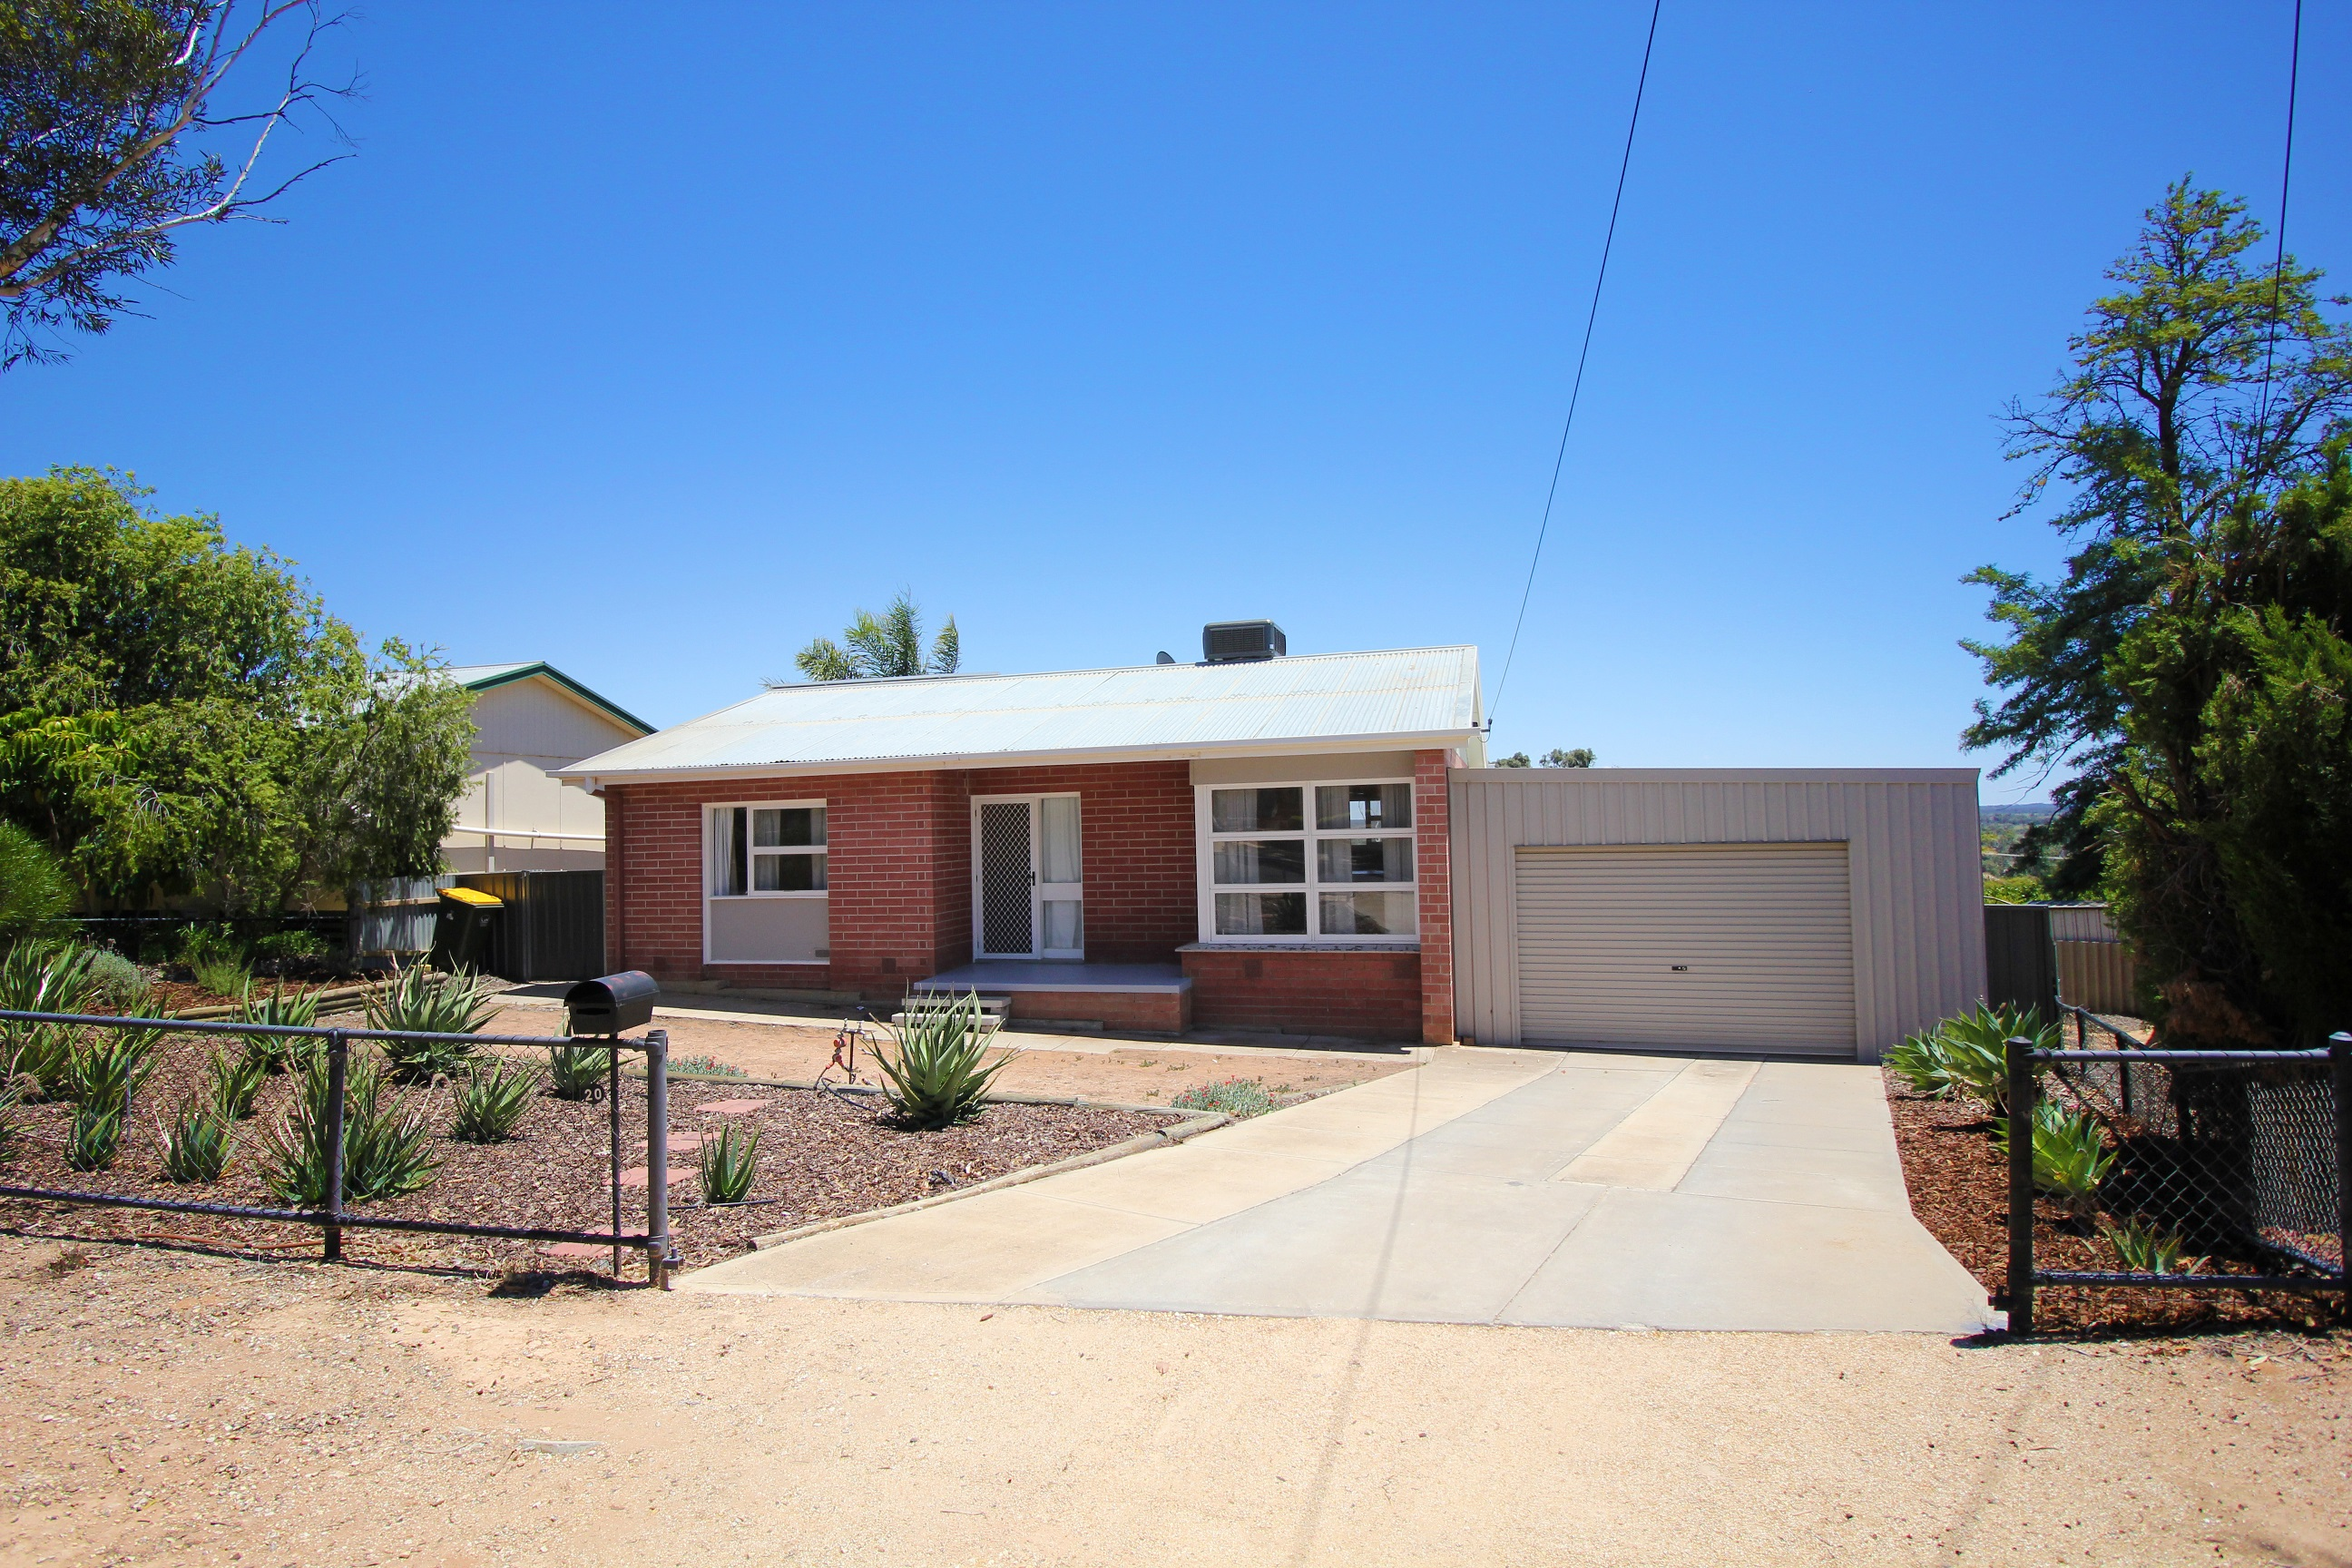 FRESH & TIDY 3 BEDROOM HOME  IN A PEACEFUL LOCATION